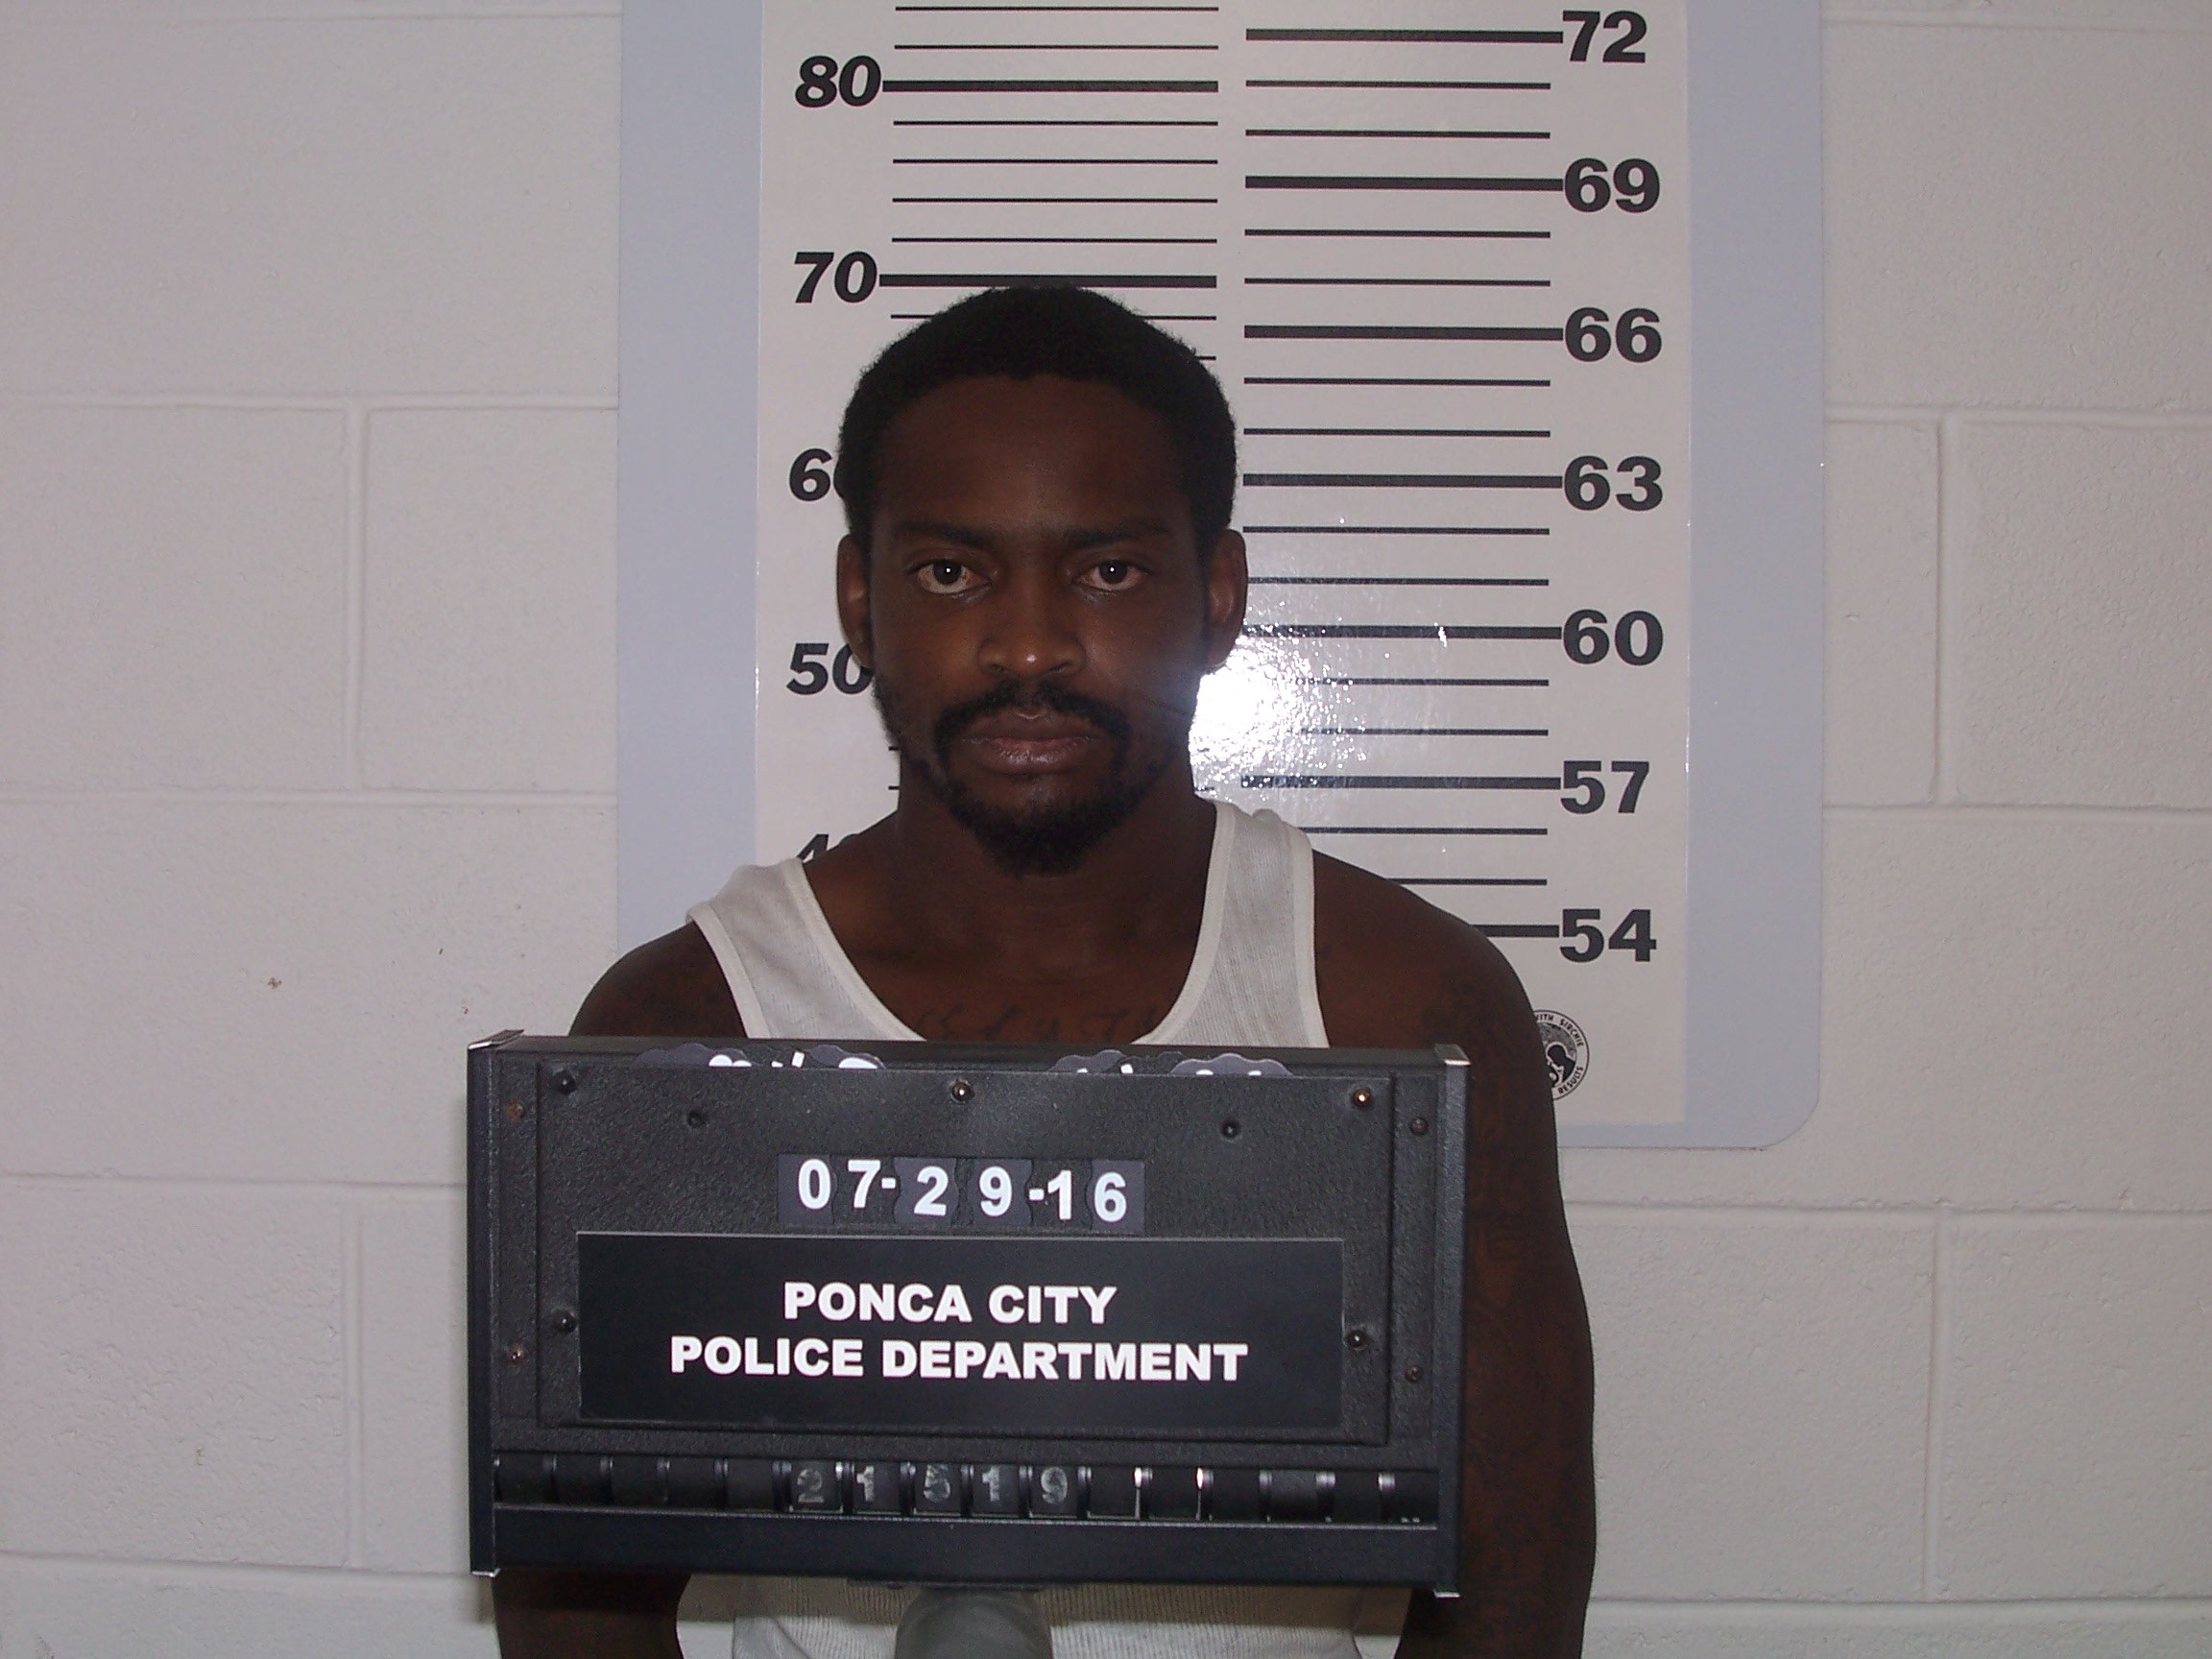 Shooting suspect arrested by Ponca City Police, US Marshals